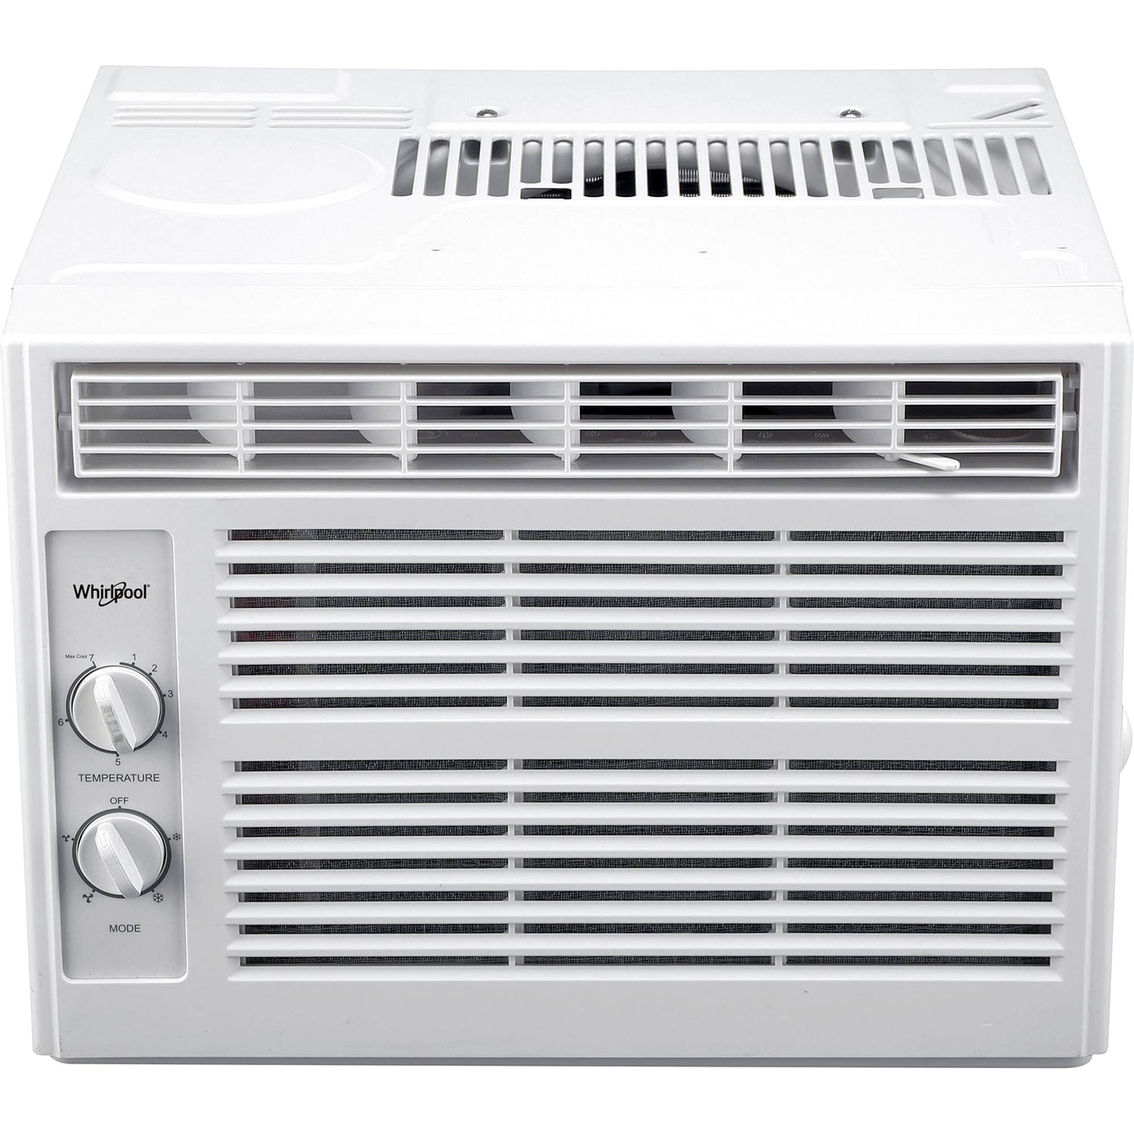 Whirlpool 5 000 btu window mounted air conditioner with for 12 x 19 window air conditioner